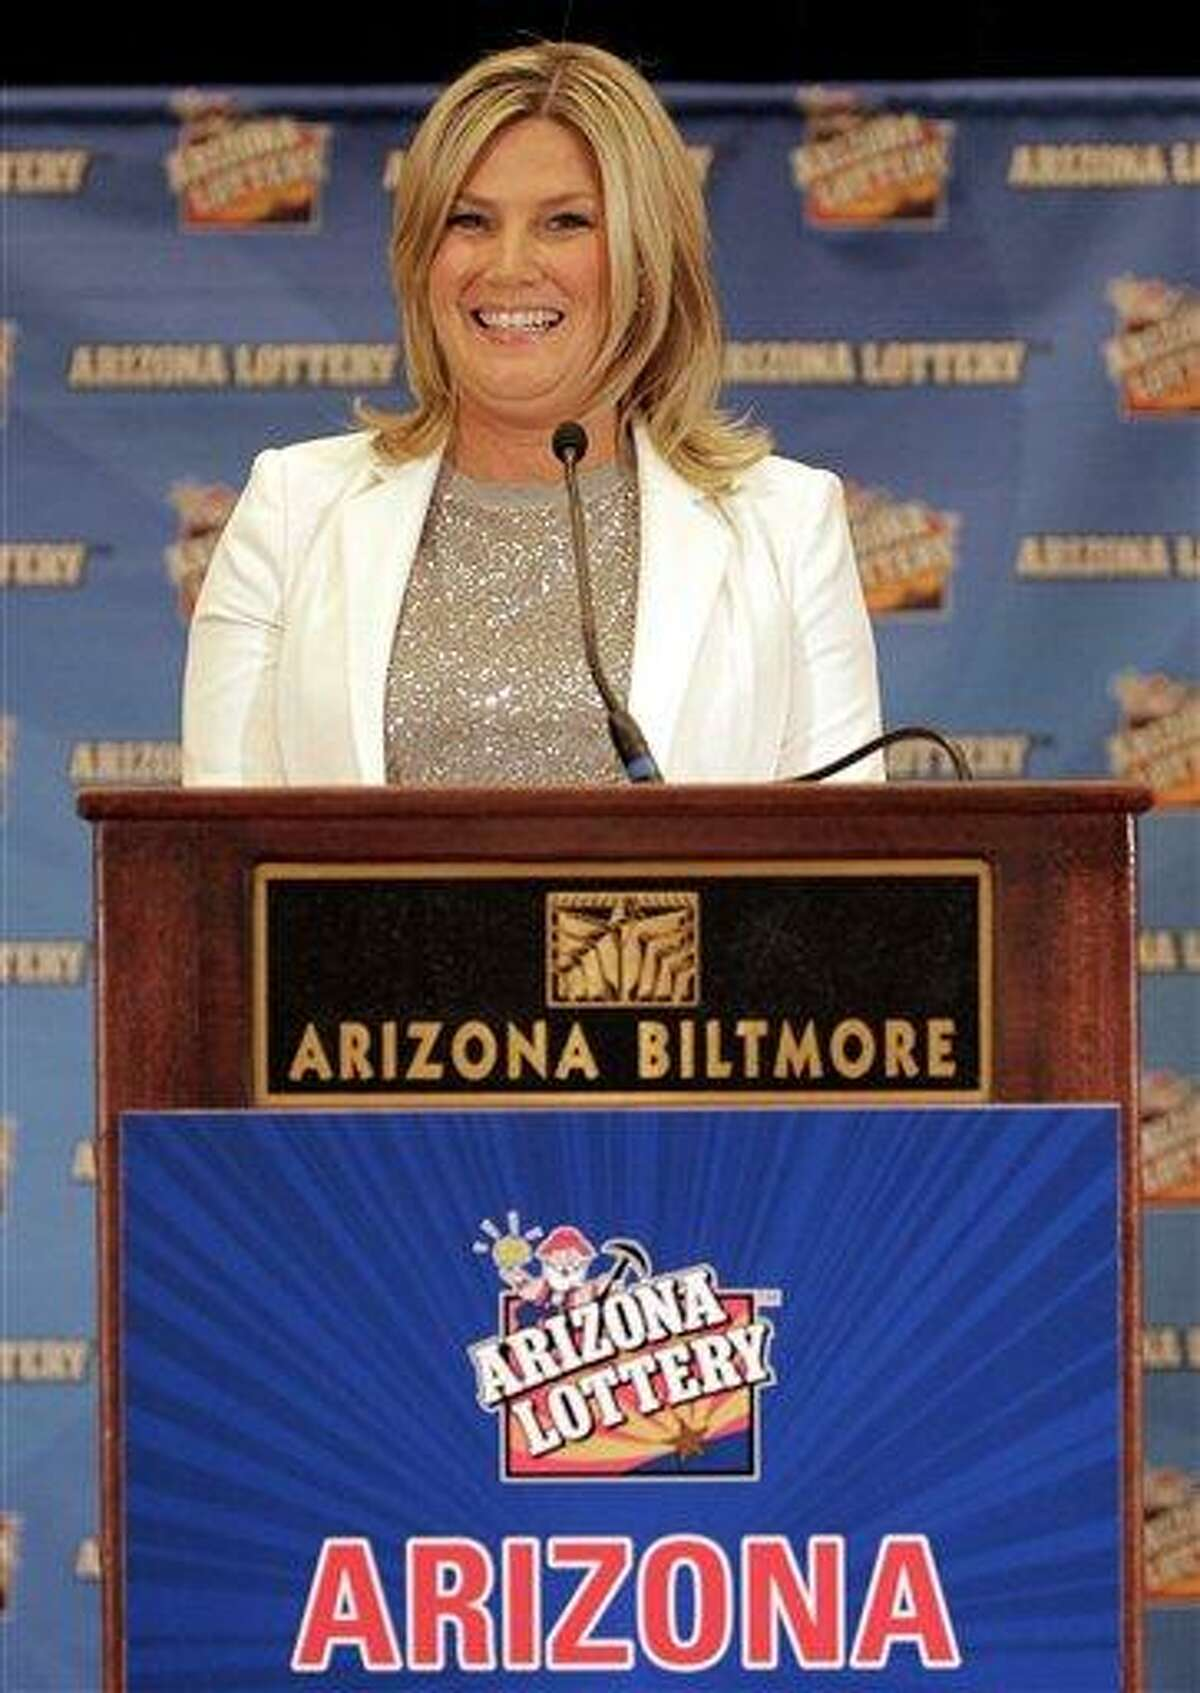 Arizona Lottery Director of Budget, Products and Communications Karen Bach speaks during a news conference Friday, Dec. 7, 2012 in Scottsdale, Ariz. The Lottery held the news conference to announce that the Arizona Lottery Powerball jackpot winning ticket has been claimed by an unidentified Arizona man. The $587.5 million jackpot is the largest in Powerball history and will be shared by co-winners Mark and Cindy Hill from Missouri. (AP Photo/Matt York)